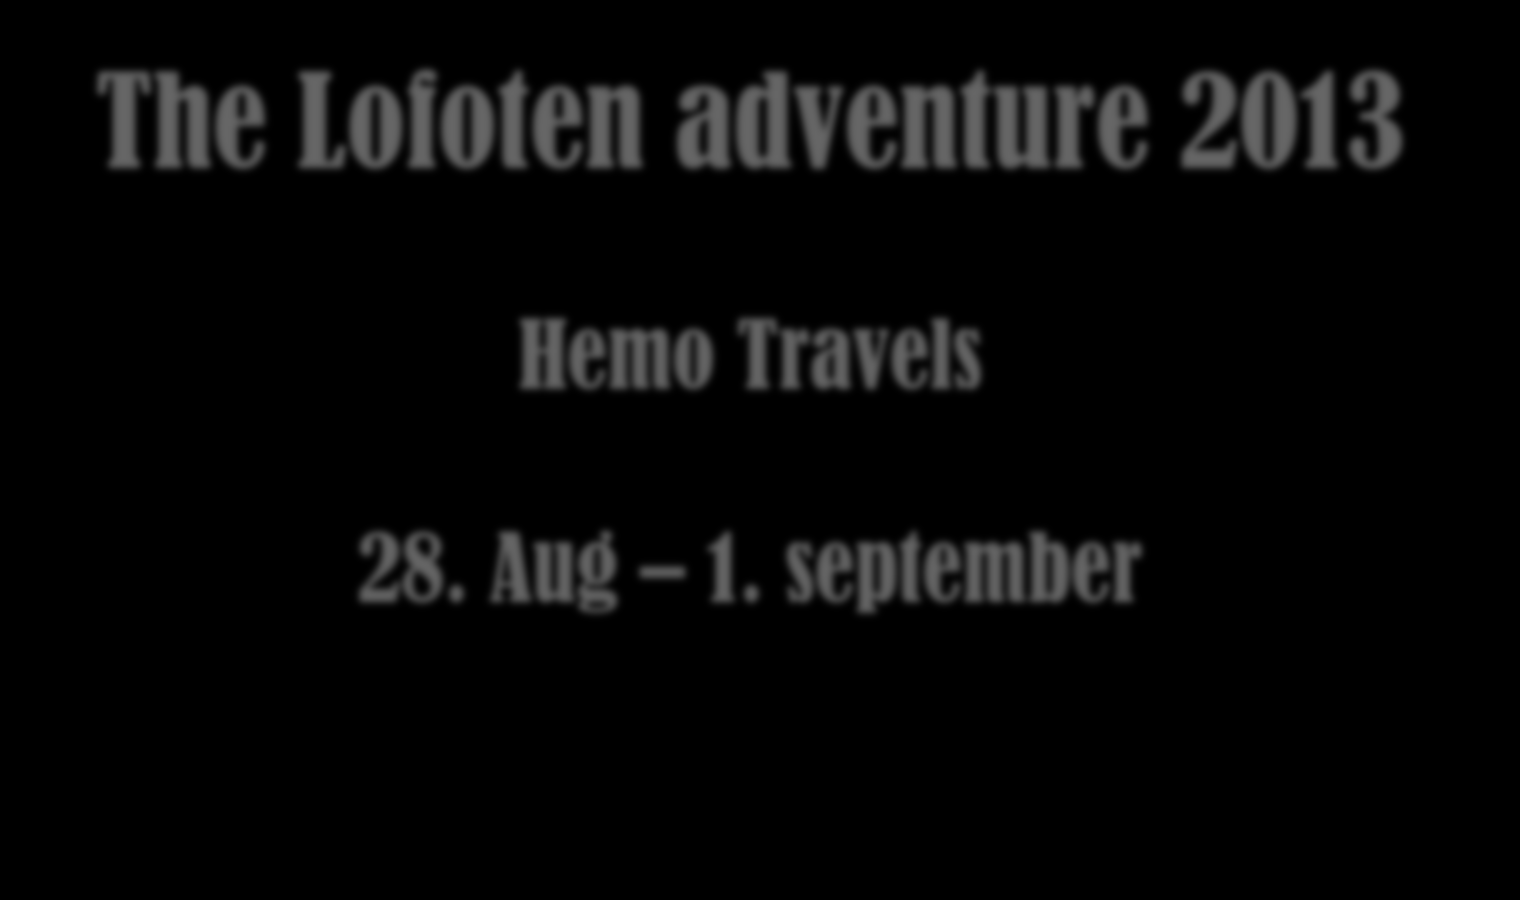 Hemo Travels 28.